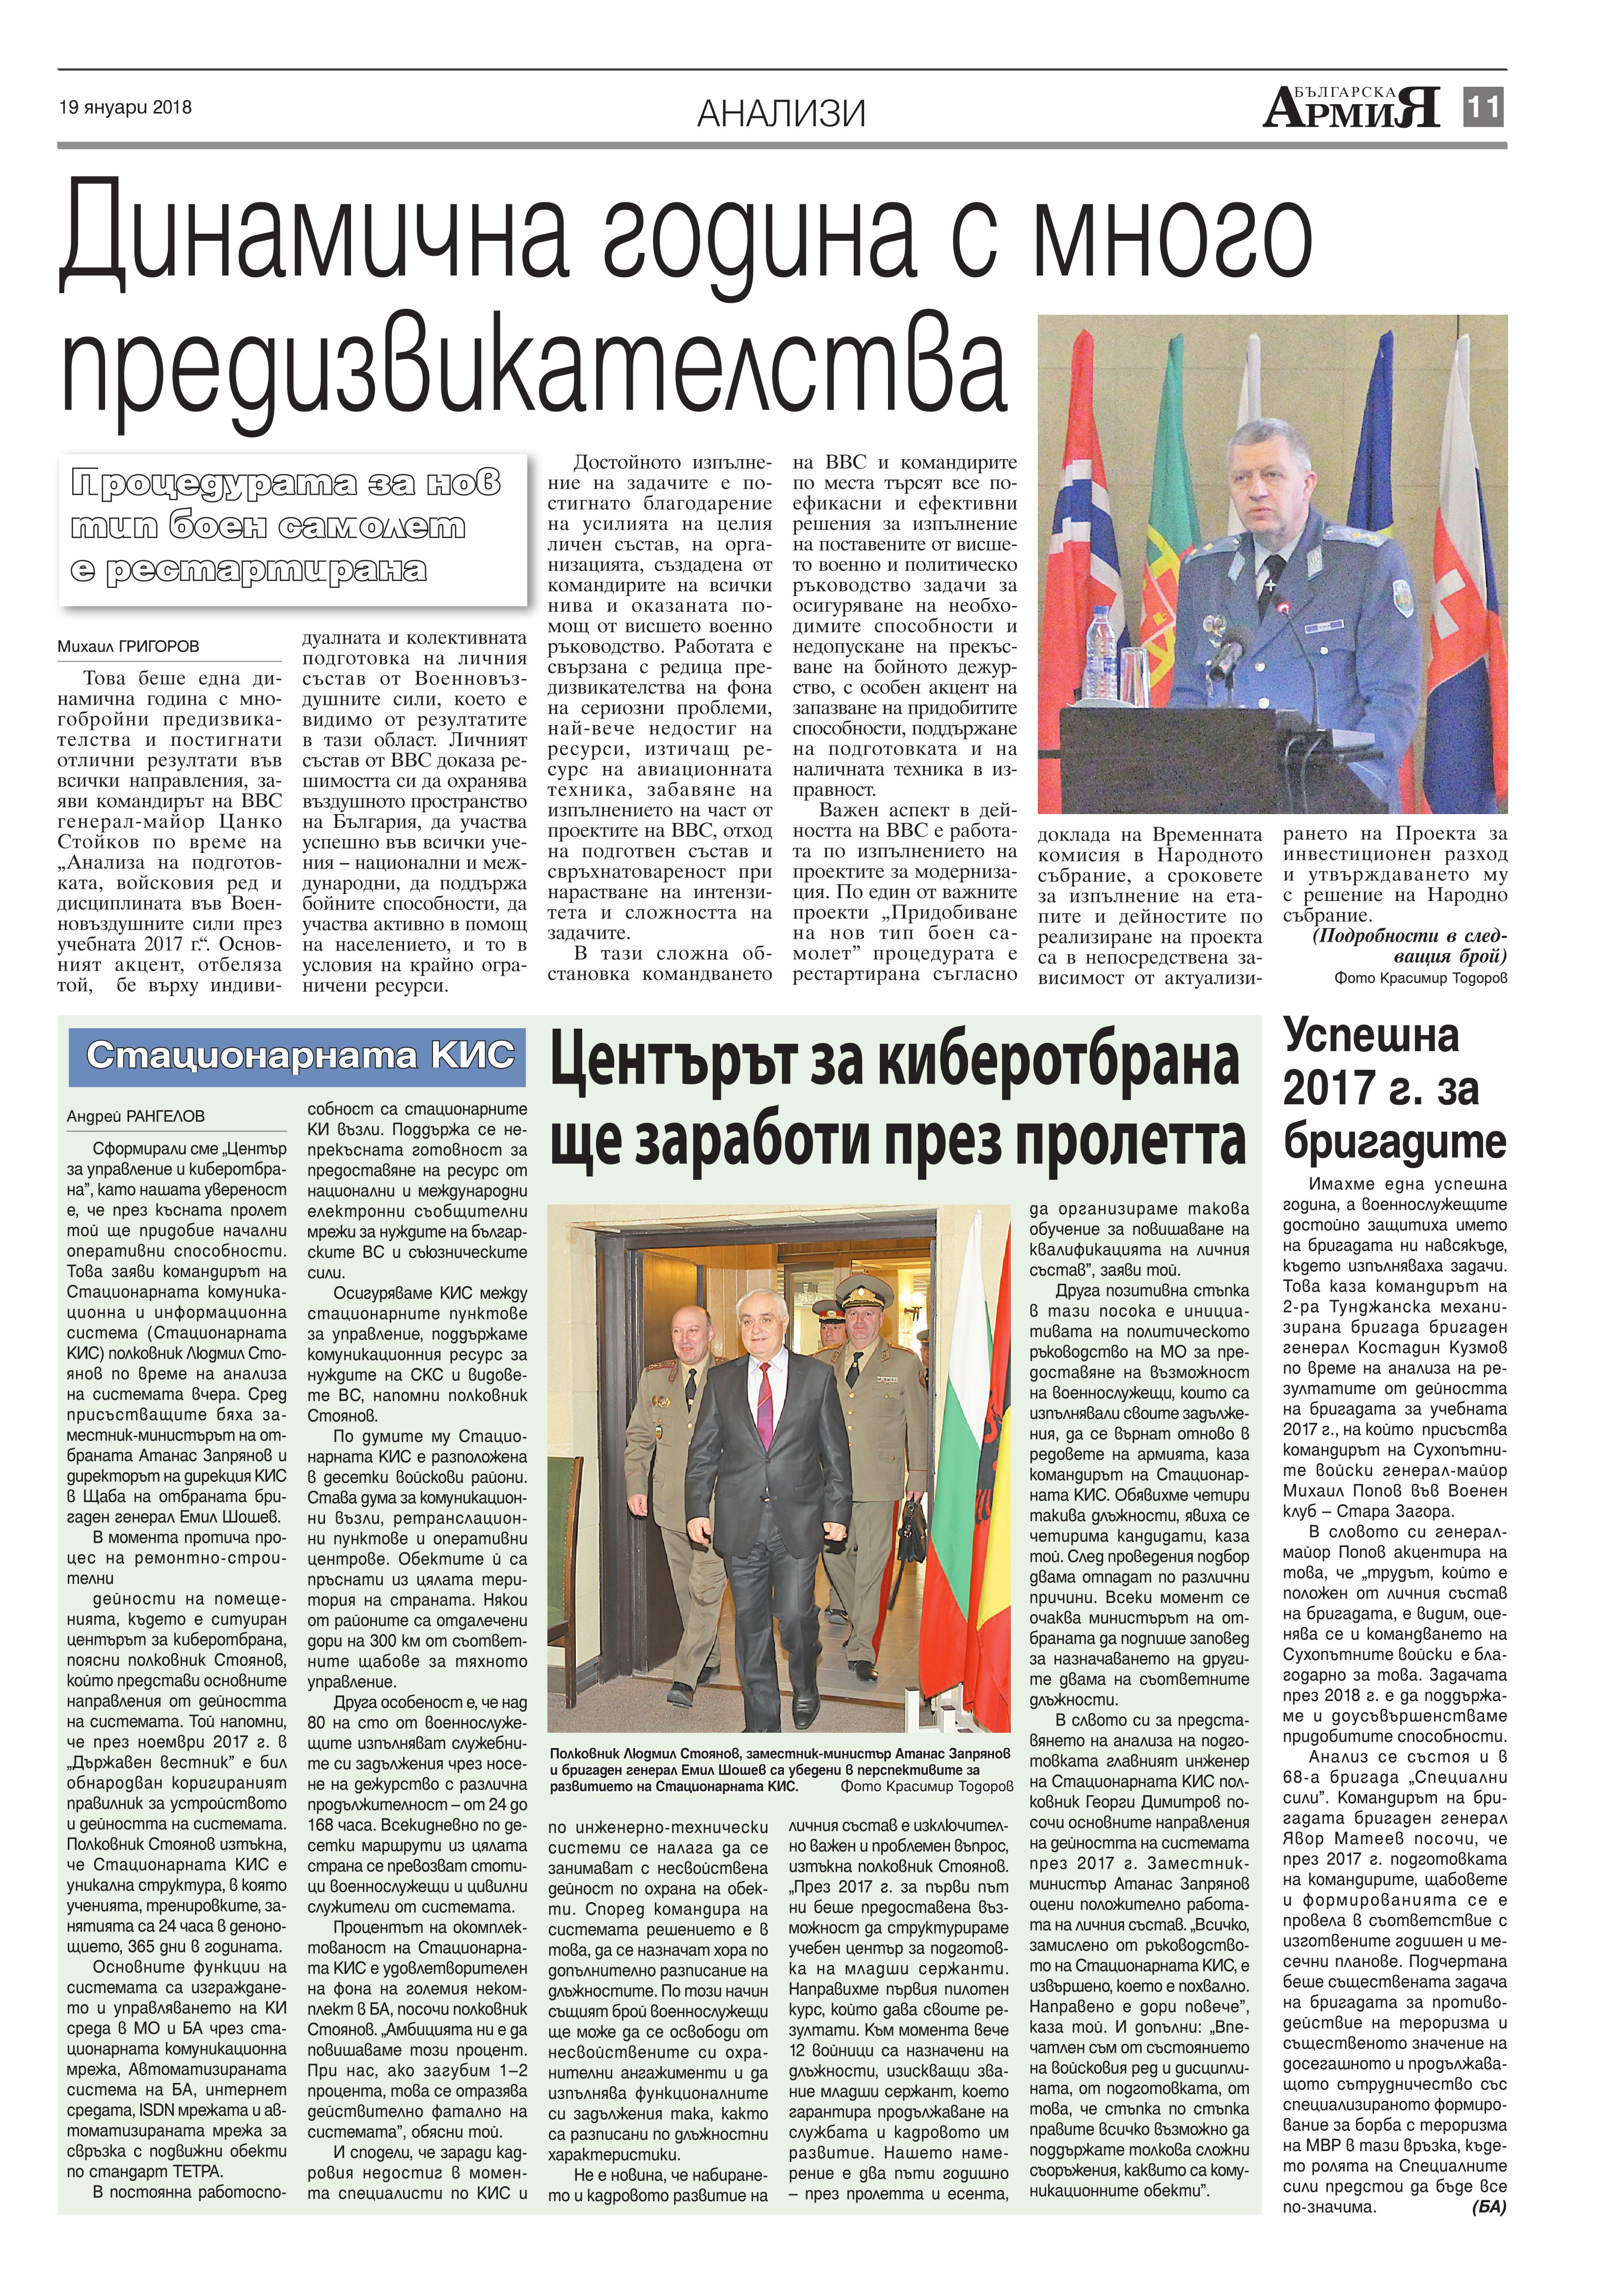 https://armymedia.bg/wp-content/uploads/2015/06/11.page1_-37.jpg